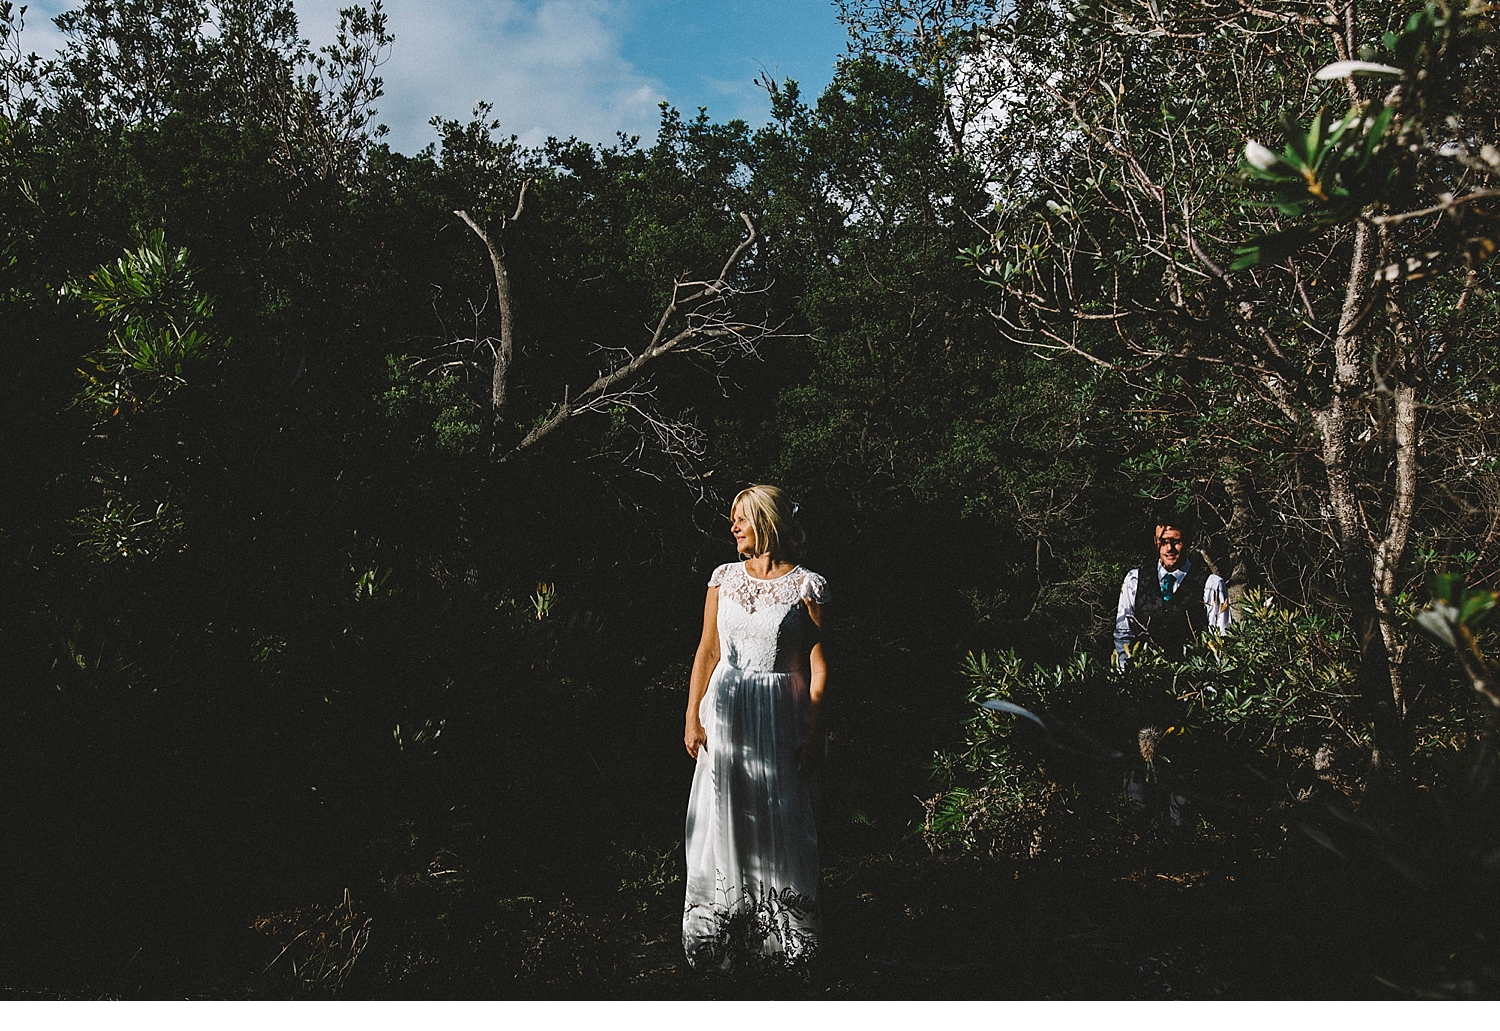 Holly_And_Josh_Morgan_Roberts_Photography 0004.JPG